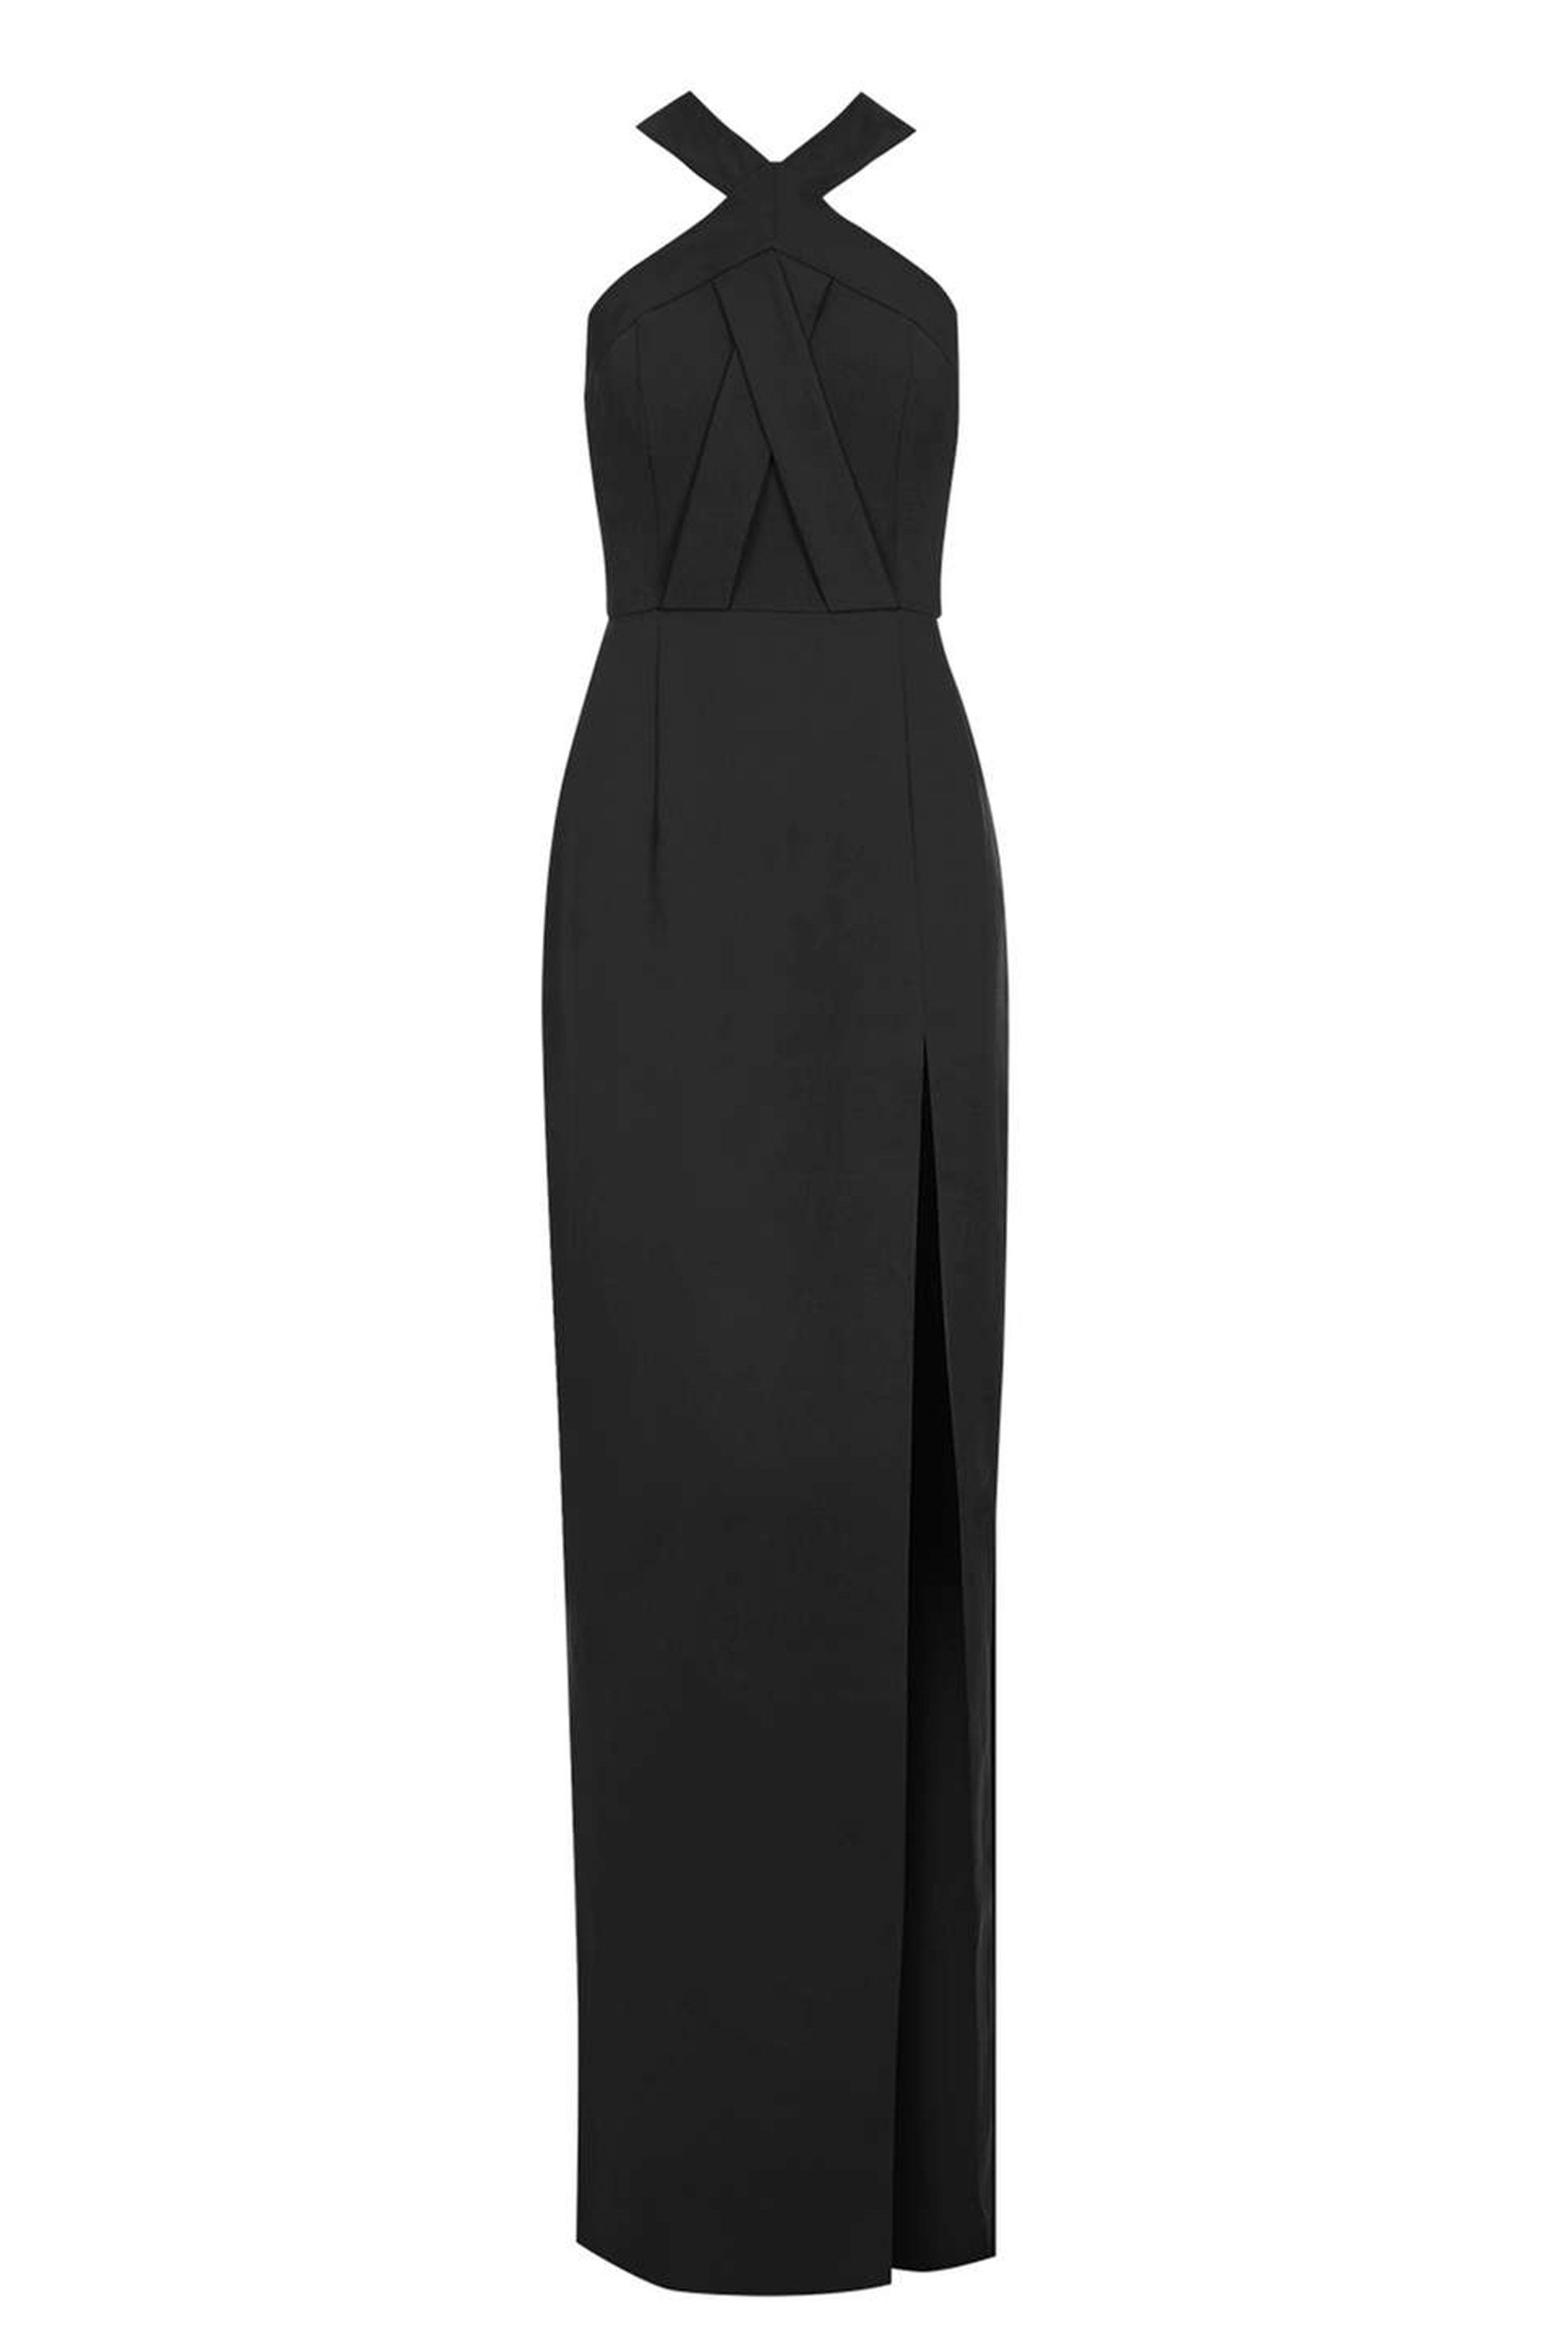 "<p>Topshop Cross Front Maxi Dress, $115; <a href=""http://us.topshop.com/en/tsus/product/clothing-70483/dresses-70497/oix-fnt-split-ring-5974244?bi=160&ps=20"" target=""_blank"">topshop.com</a></p>"